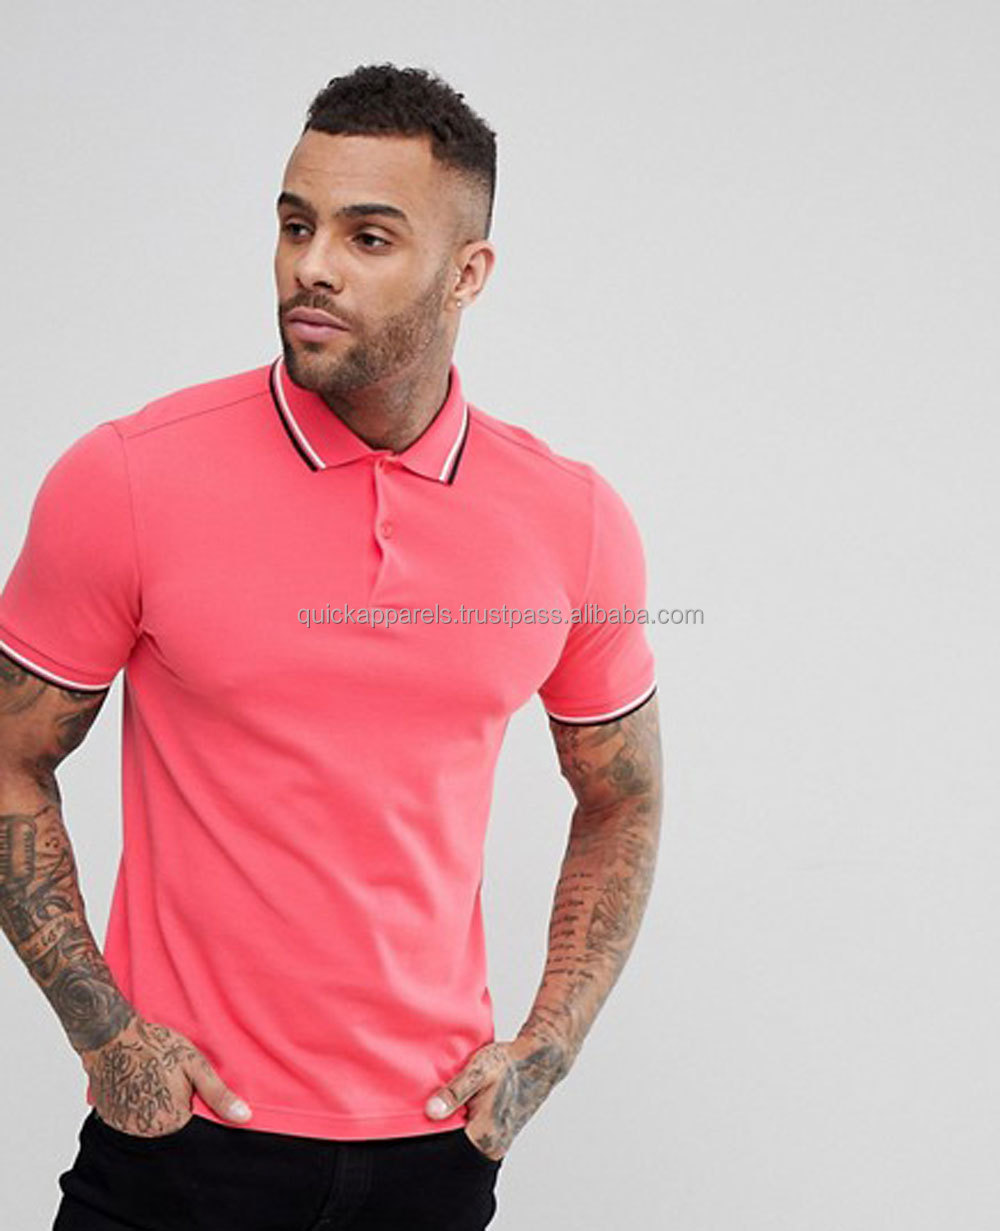 Oem mode mannen blauw 220g 100% pique katoen borduren plain custom/Slim Fit Twin Getipt Polo In Coral